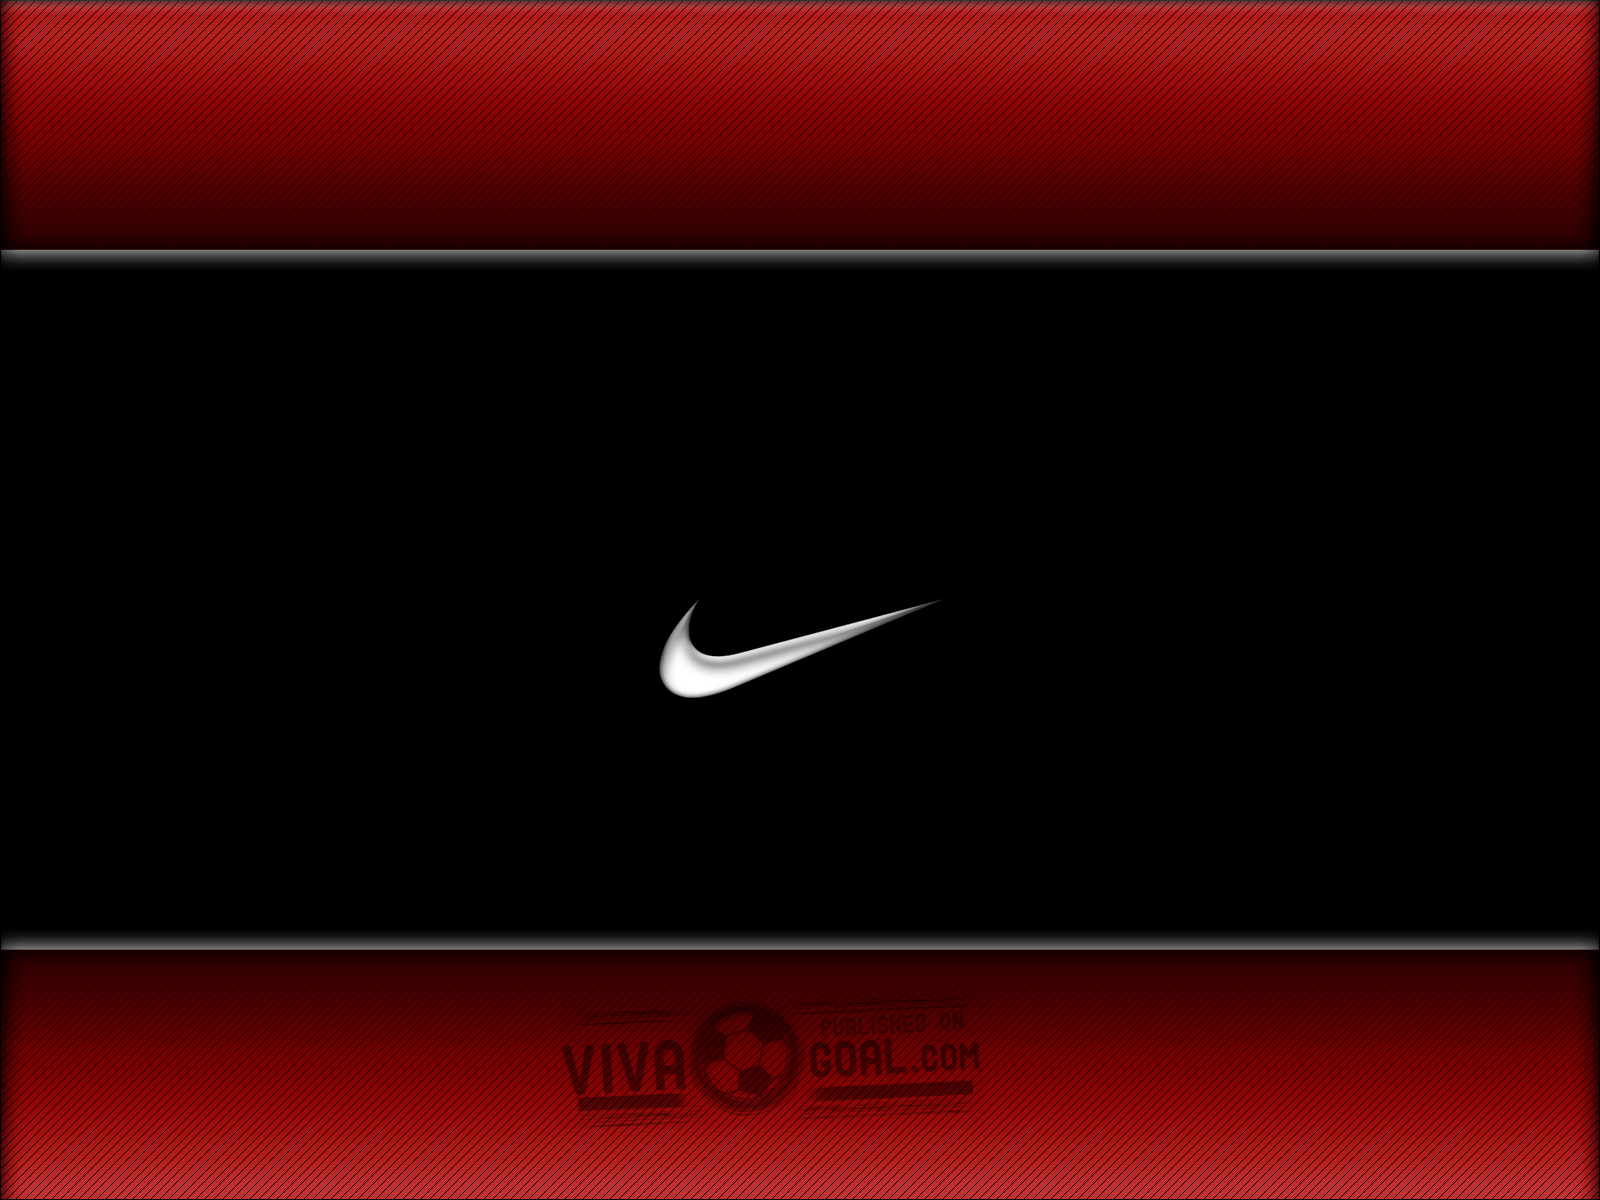 Nike Football Mac Desktop Wallpaper Hd   Football Wallpaper HD 1600x1200